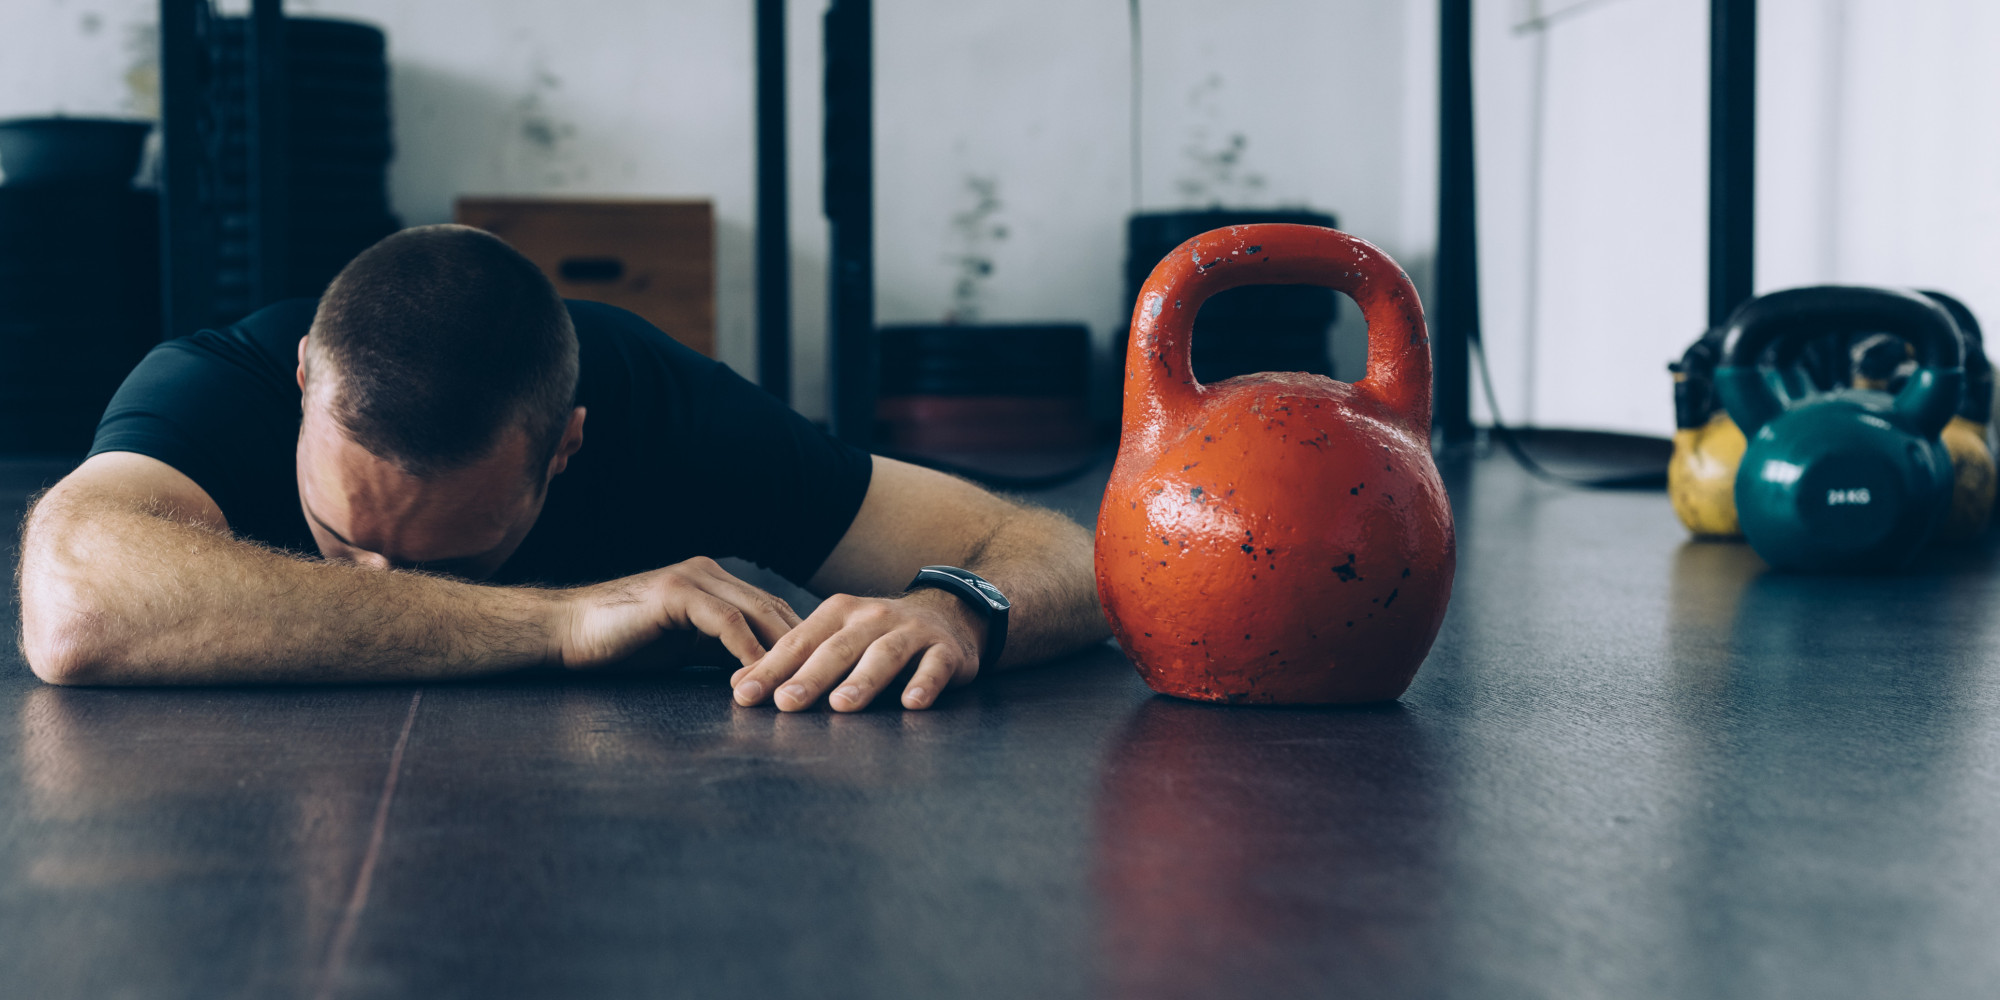 4 Common Workout Injuries, Treatments and Avoidance